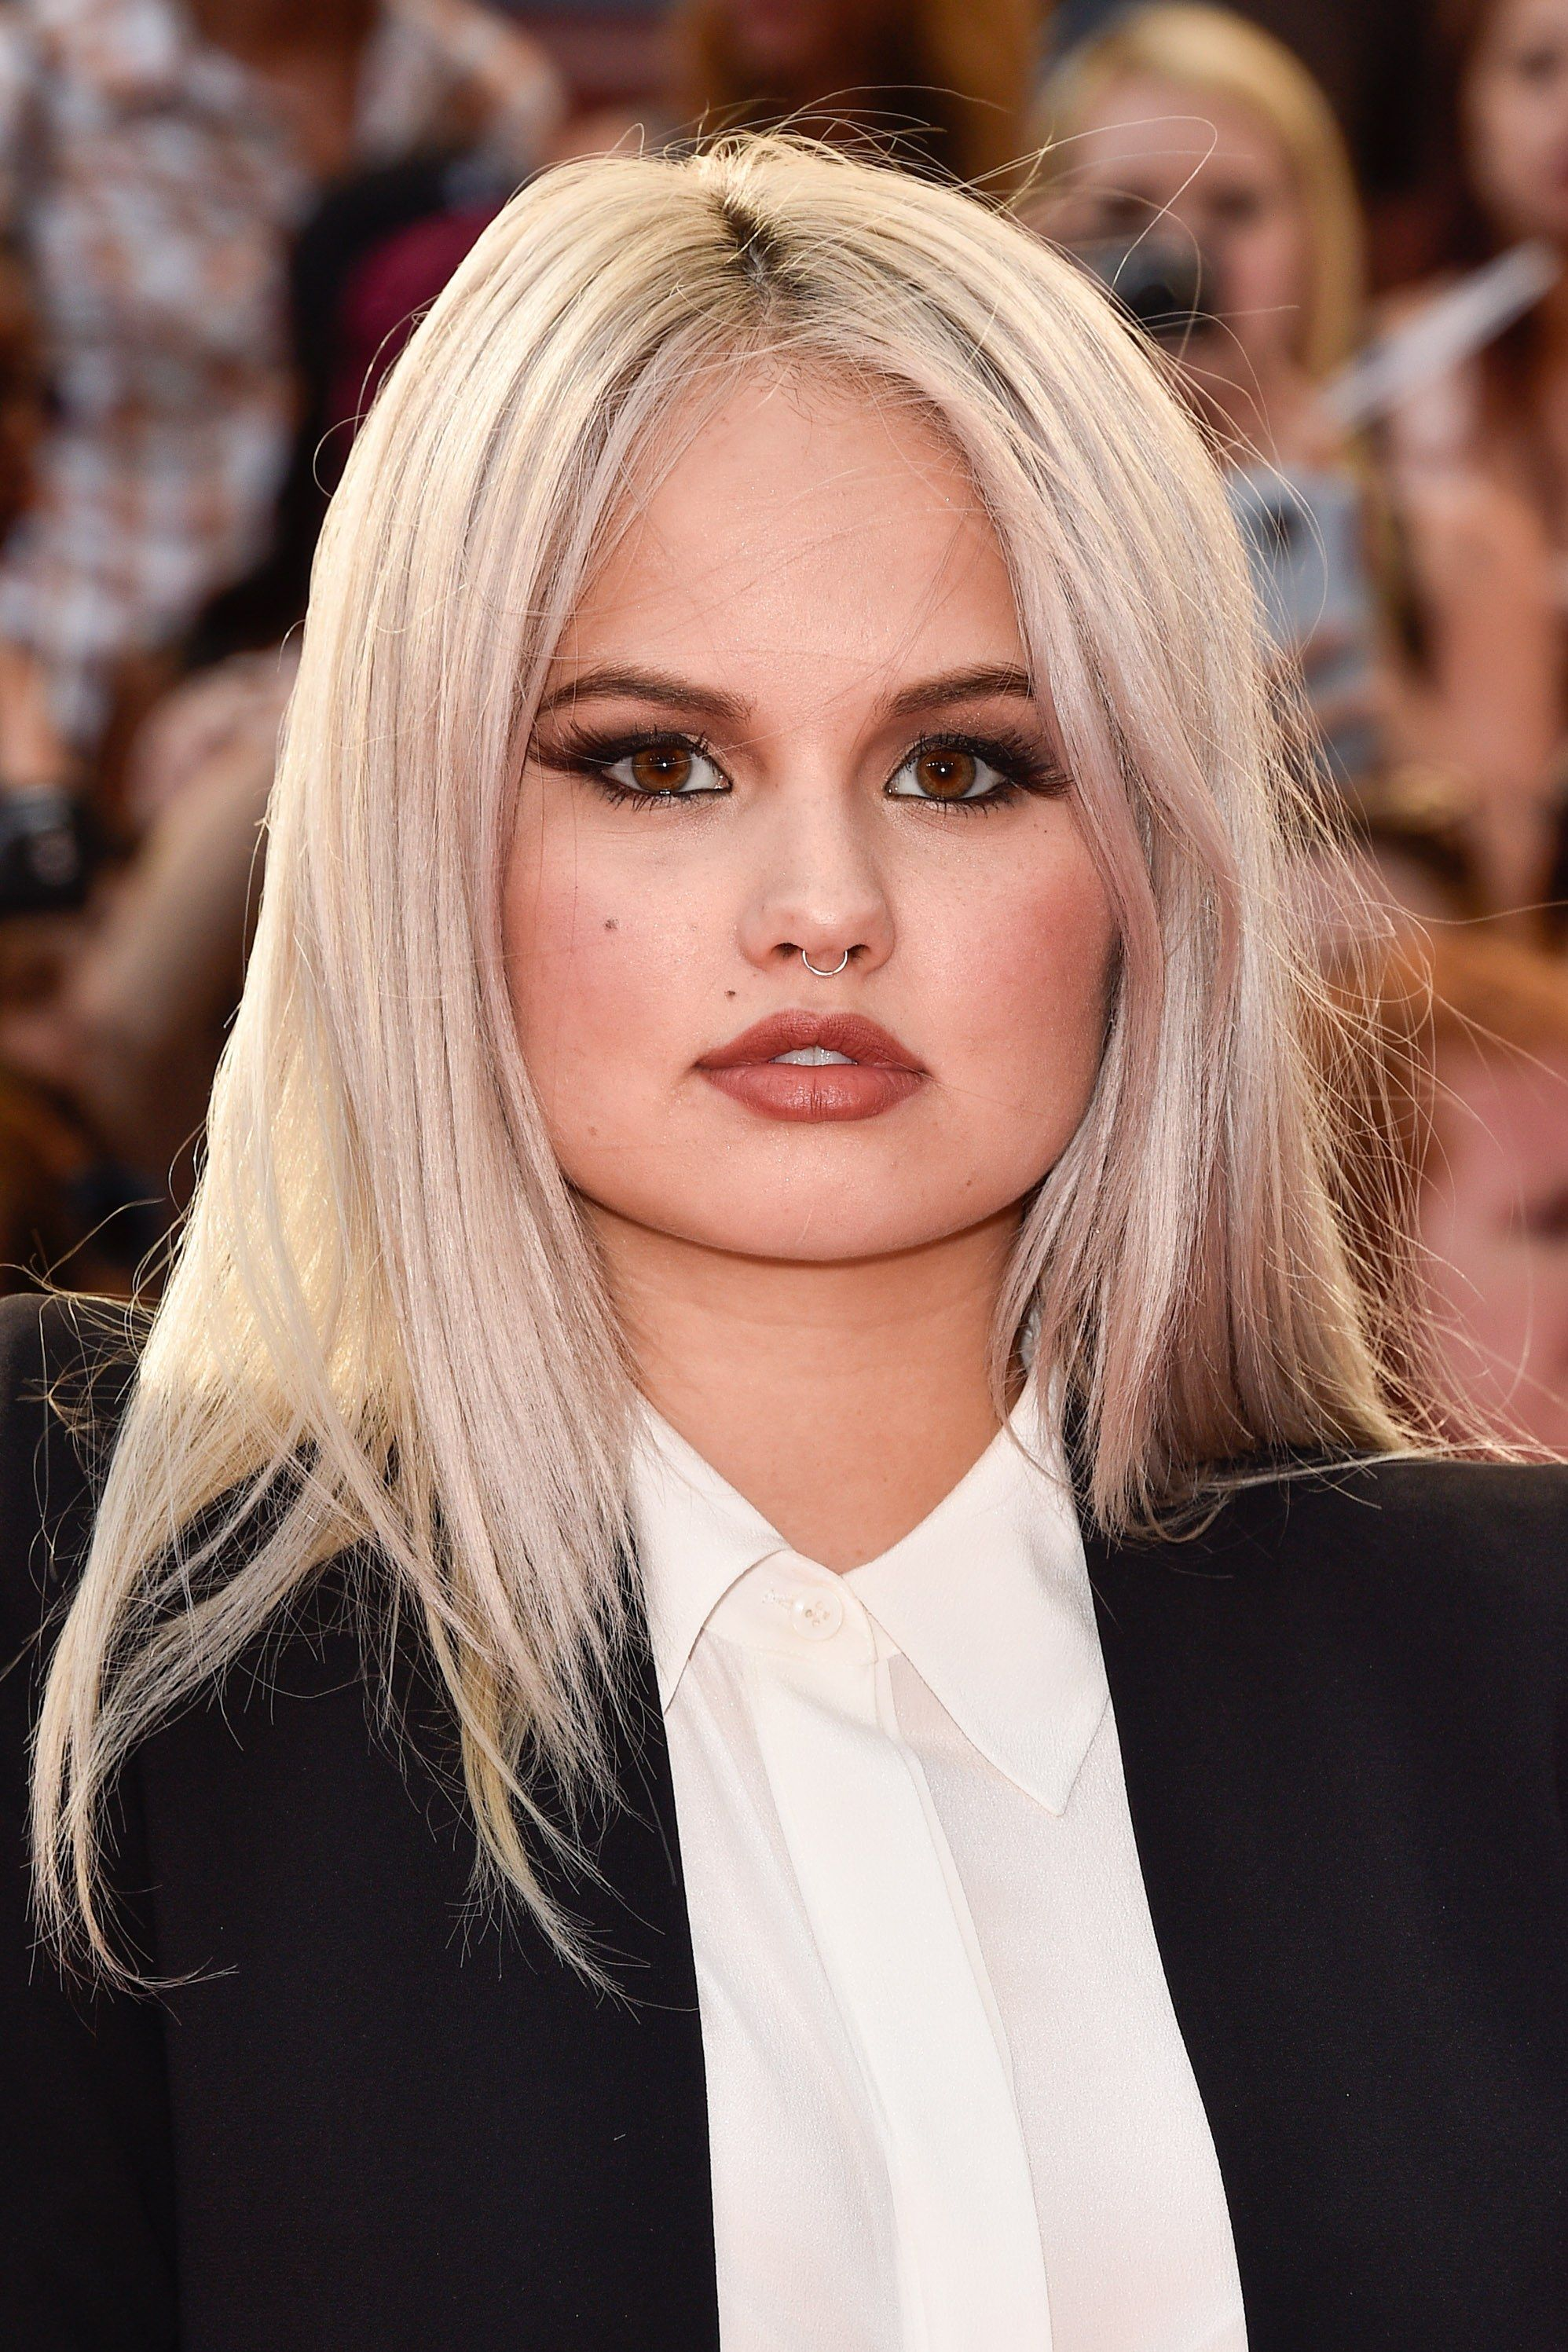 things no one tells you about dyeing your hair platinum blonde